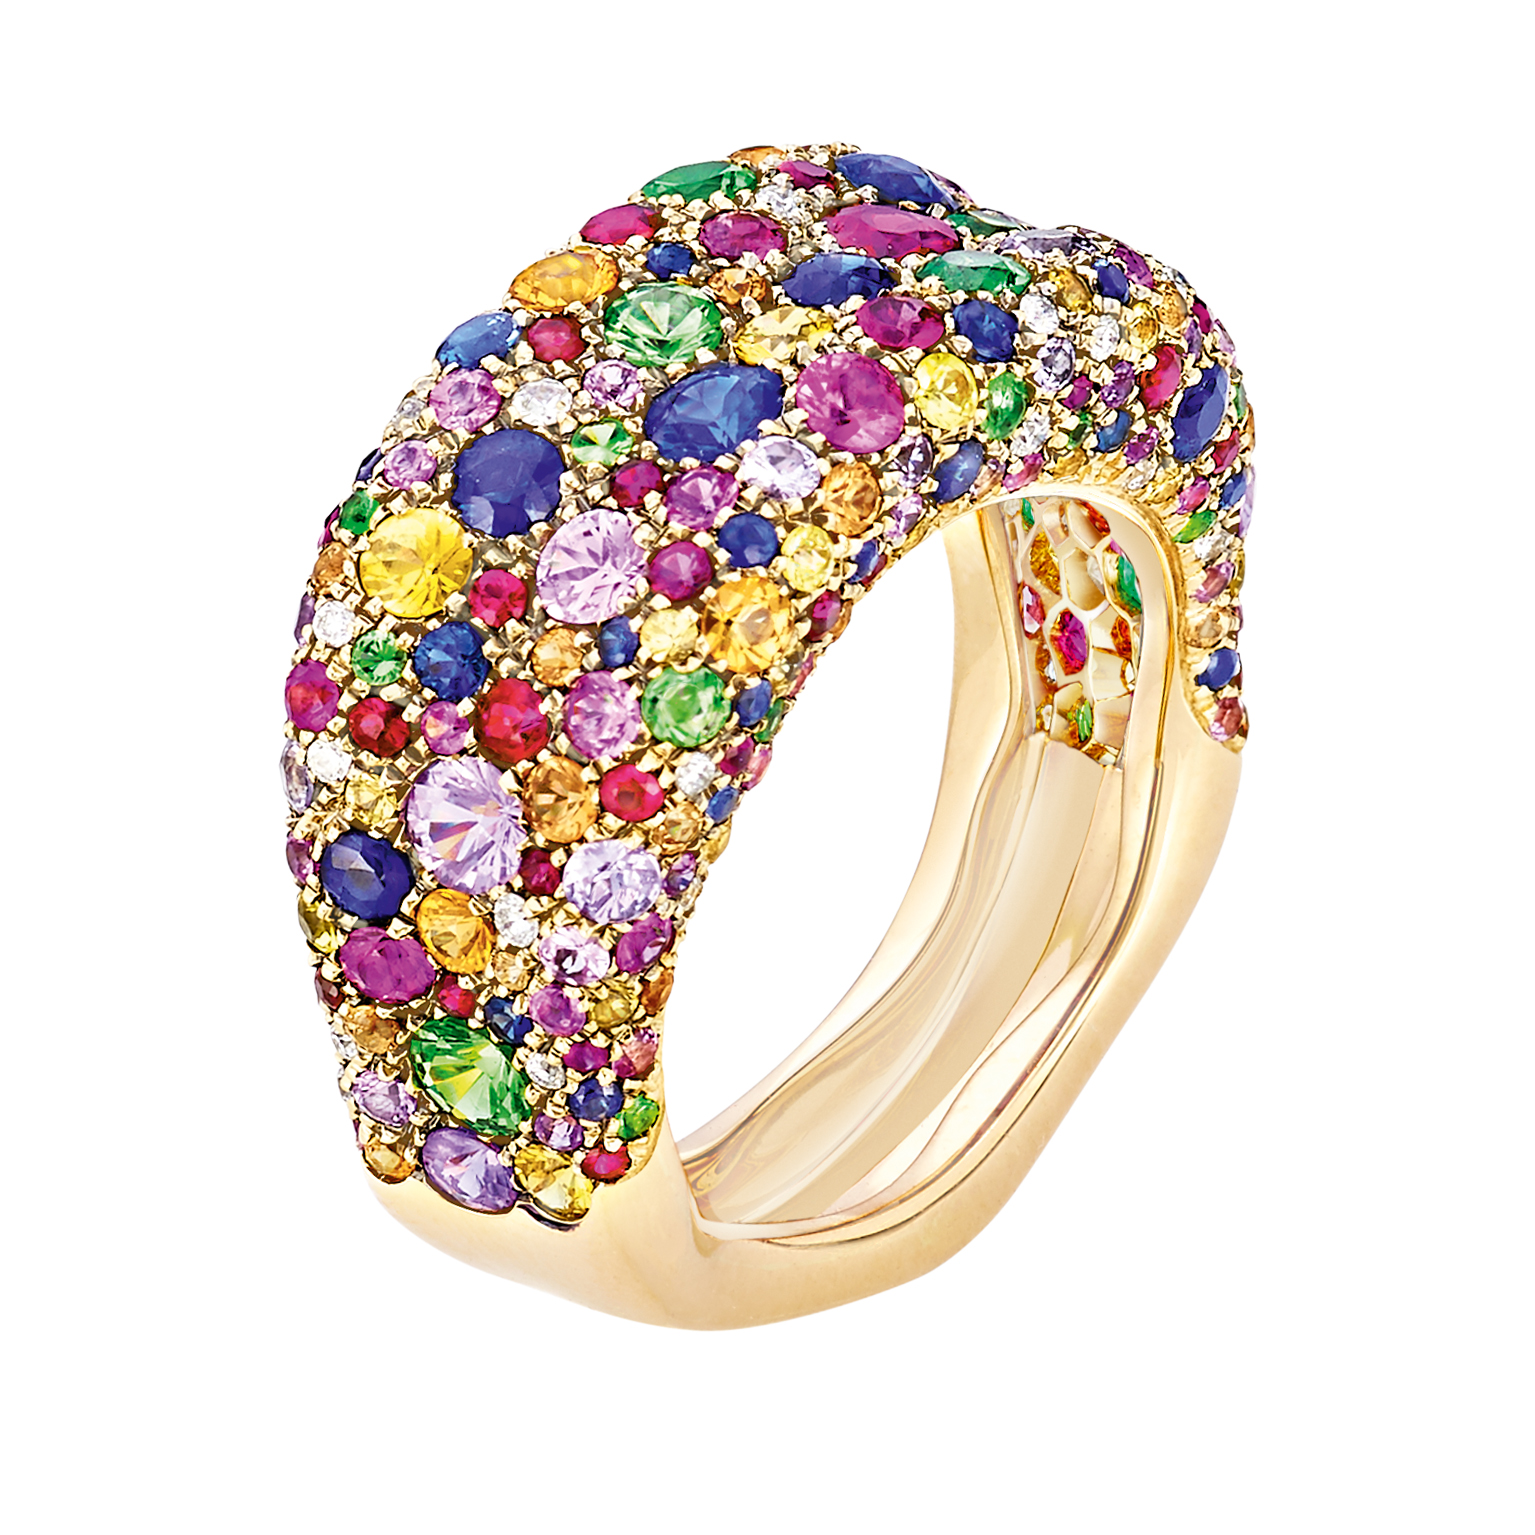 FABERGÉ EMOTION MULTI-COLOURED THIN RING